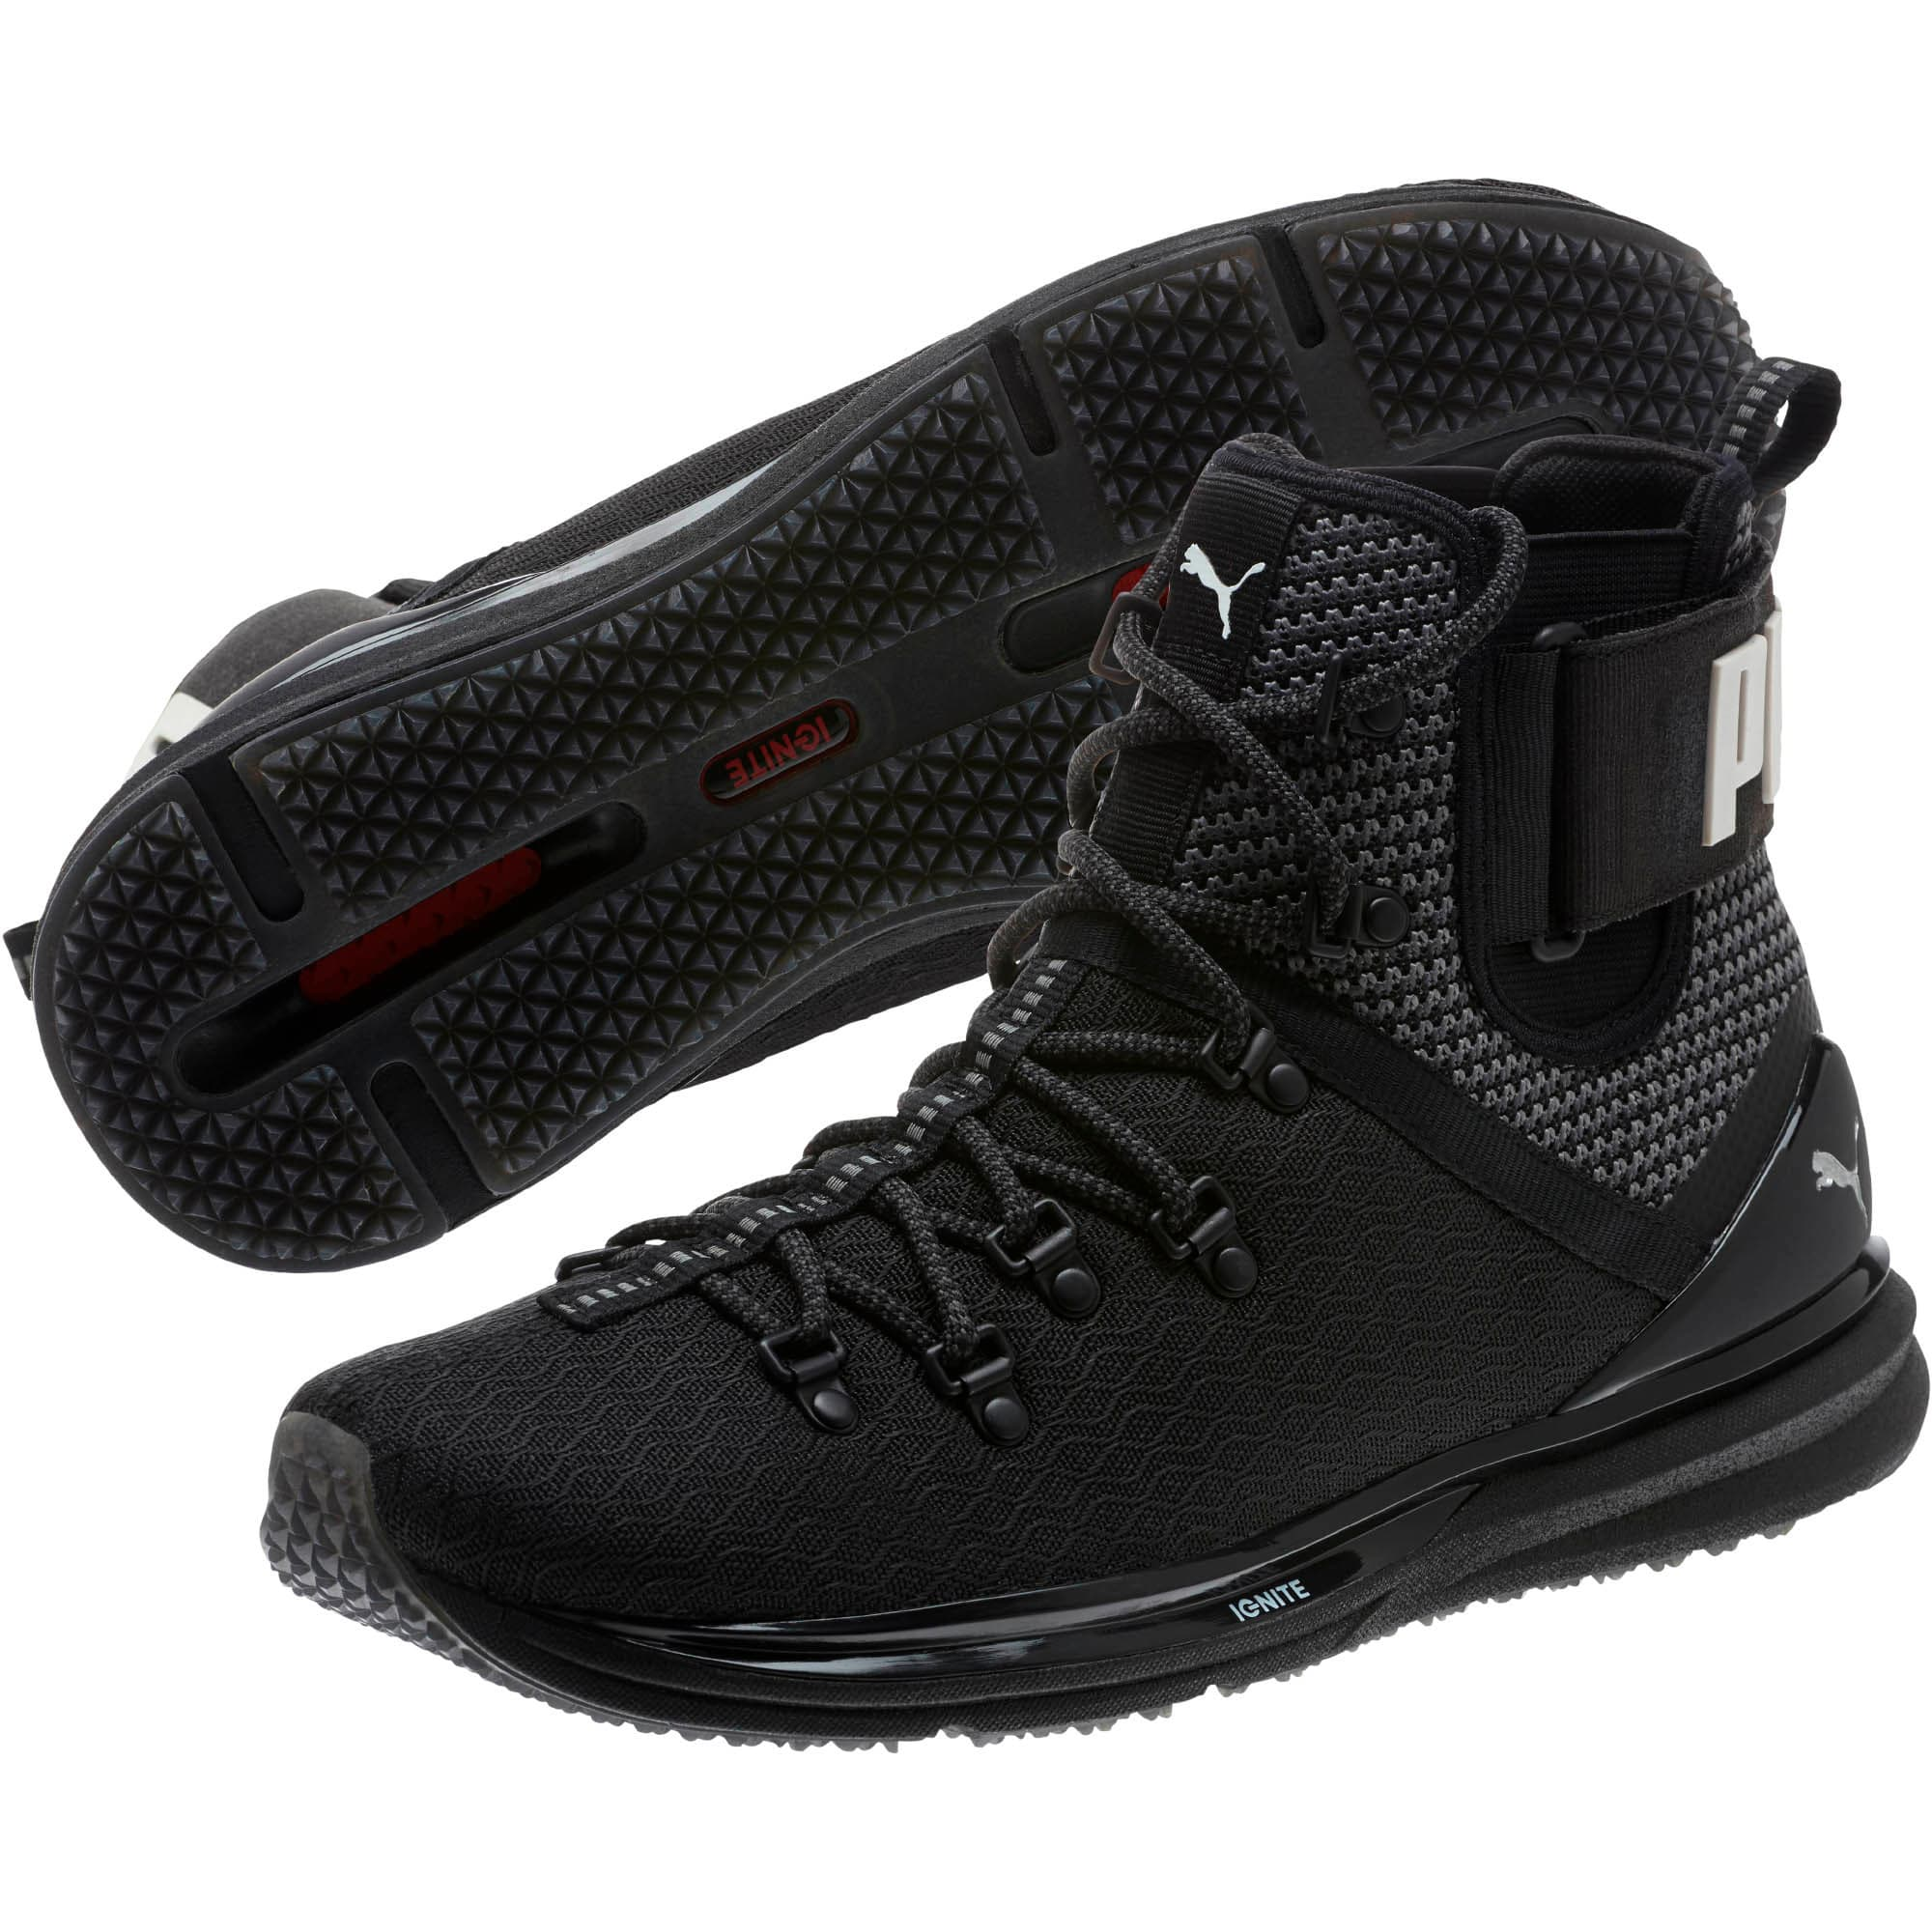 best service 4bc83 f1fee IGNITE Limitless Men's Sneaker Boots